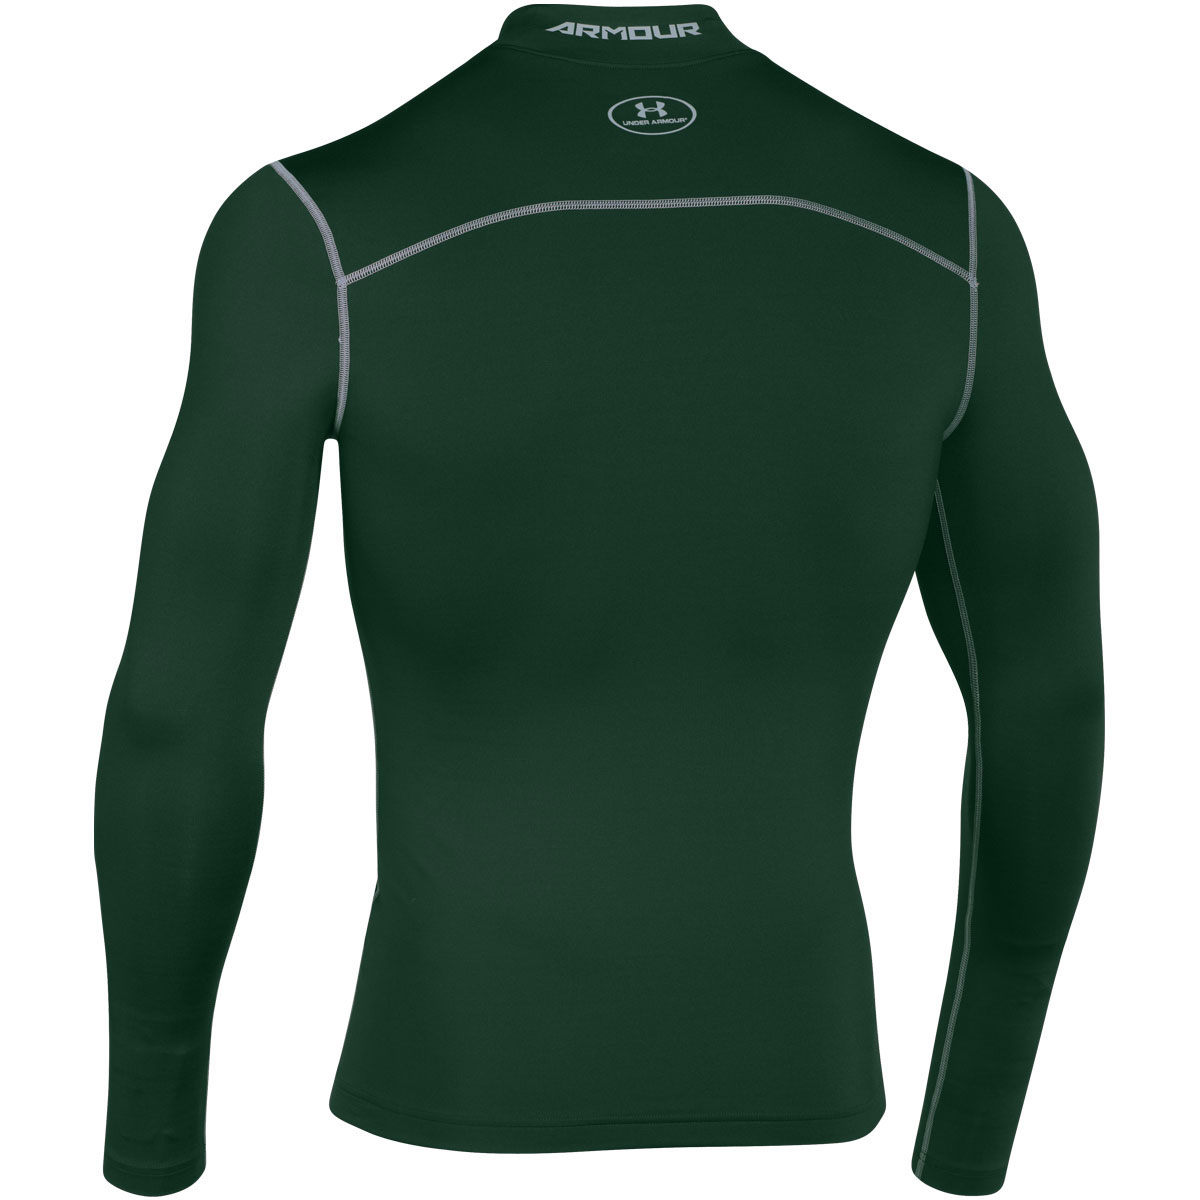 A compression base layer is a different ball game. In this case, the base layer is worn for the benefits of compression clothing, regardless of the weather conditions. Some research shows that compression garments (Under Armour, SteelStretch, etc.) can delay muscle fatigue and increase performance when worn during exercise.